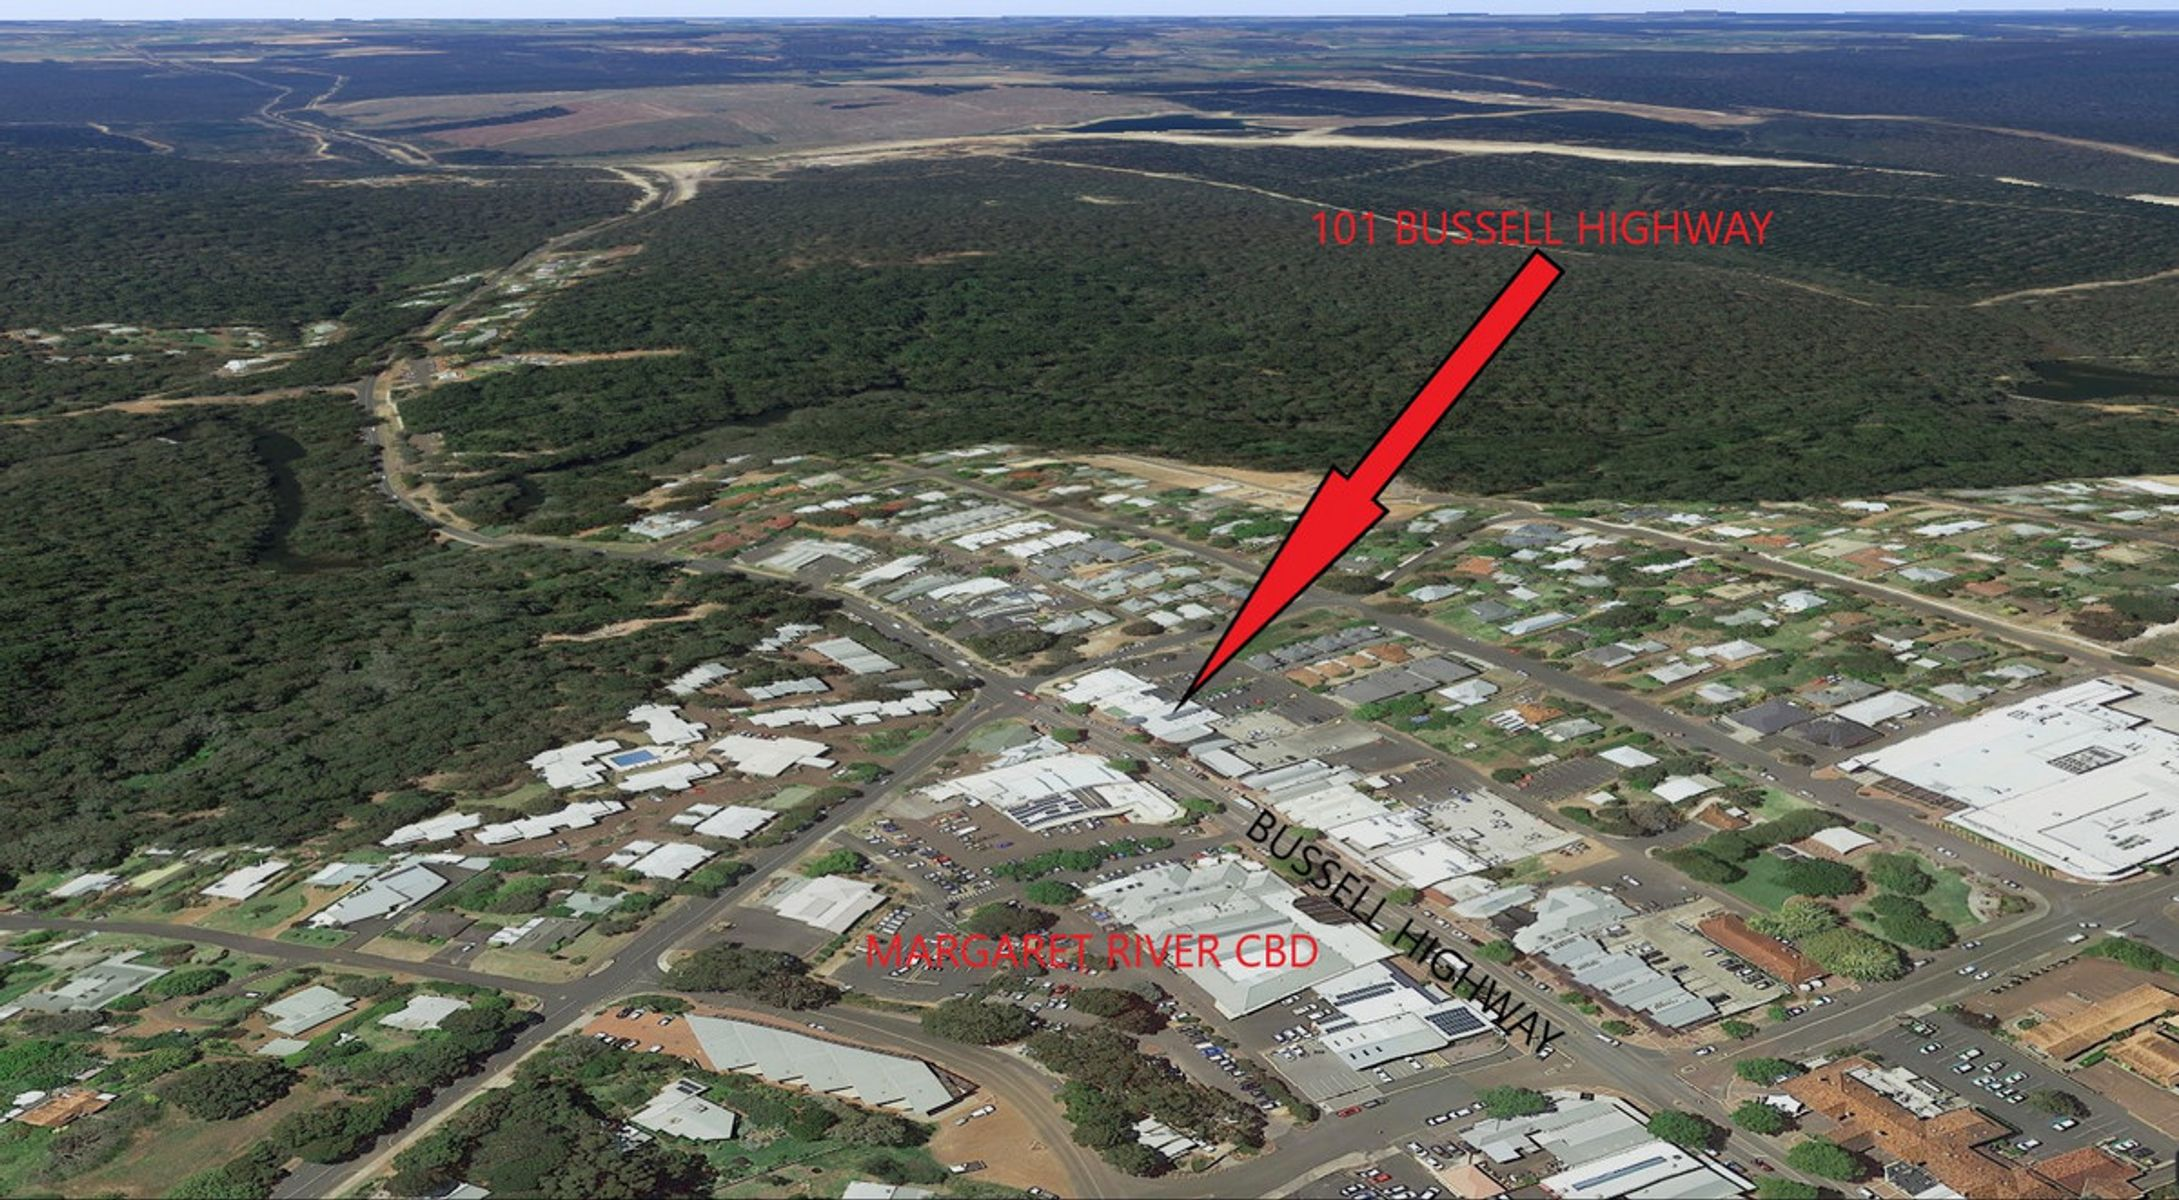 101 Bussell Highway, Margaret River, WA 6285